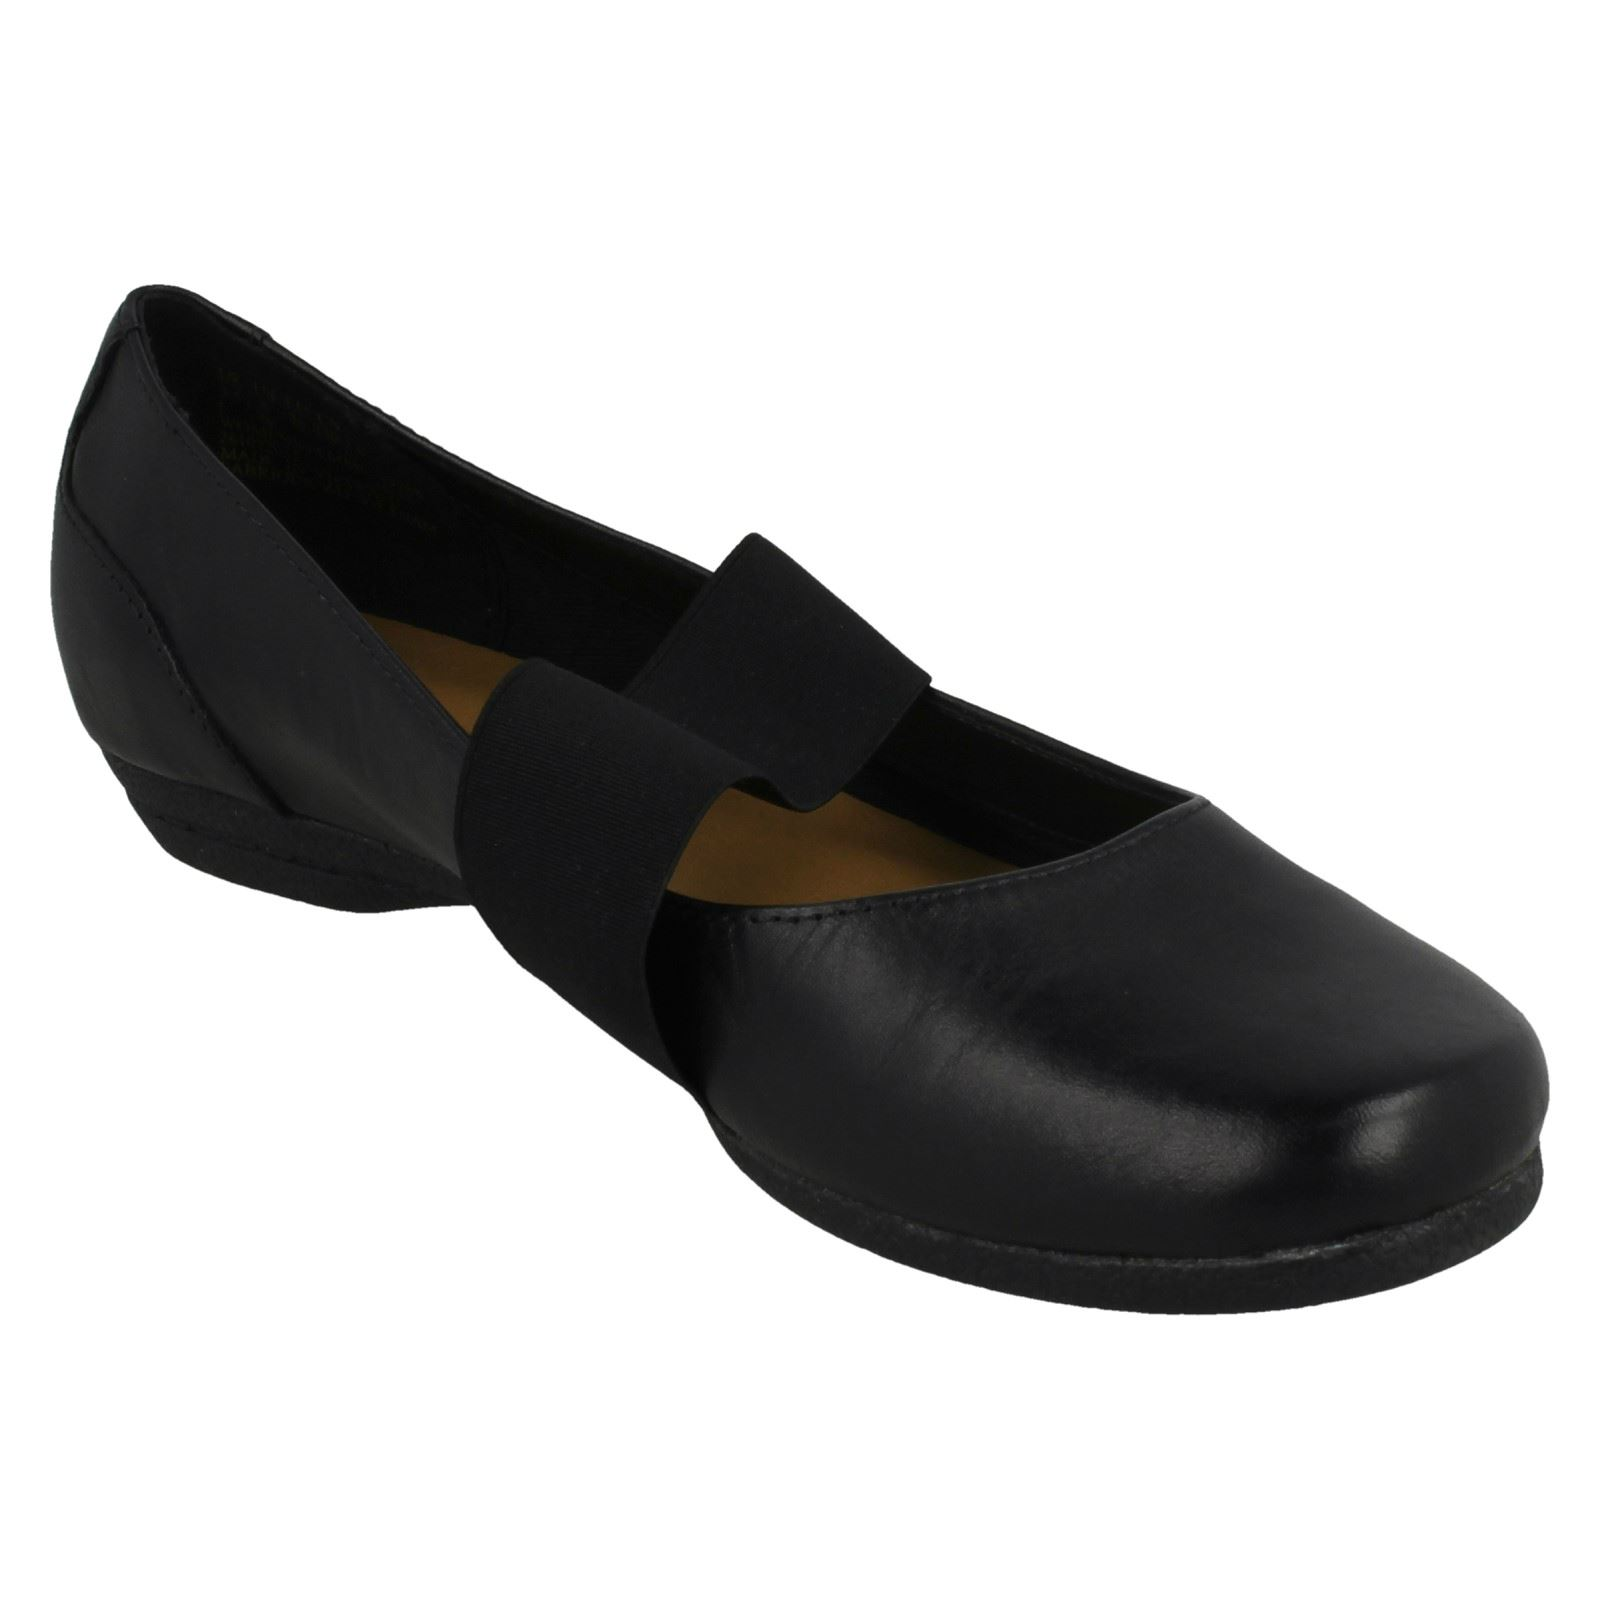 Ladies Clarks Cushioned Slip On Patent Leather Smart Flats Discovery Ritz